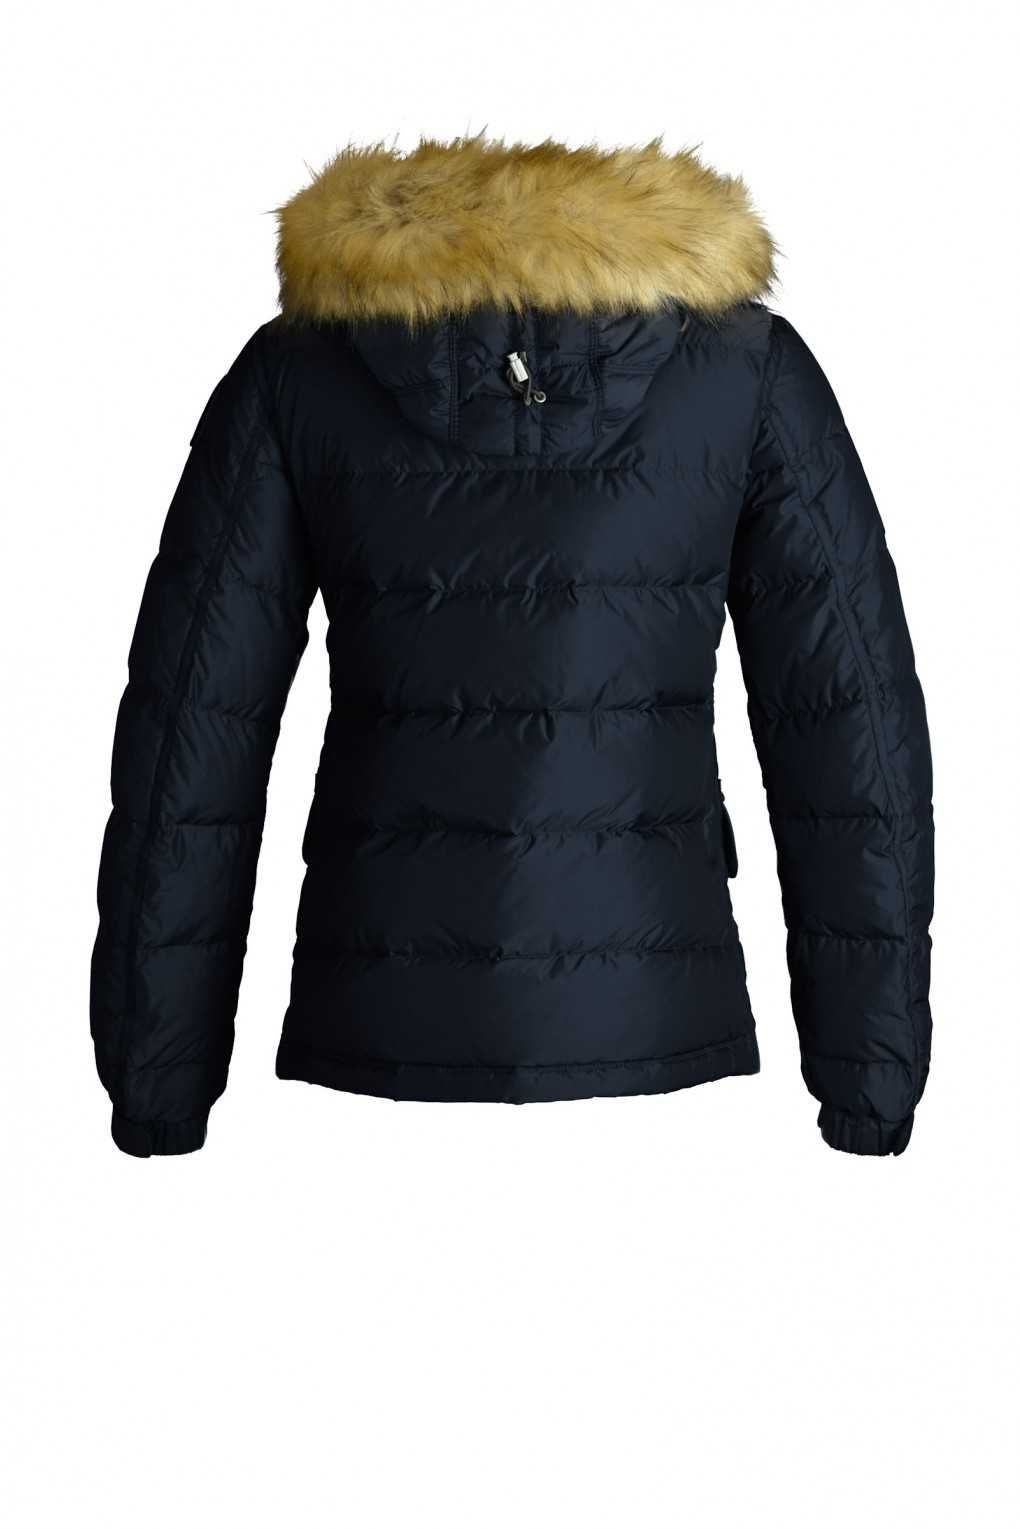 parajumpers long bear size guide